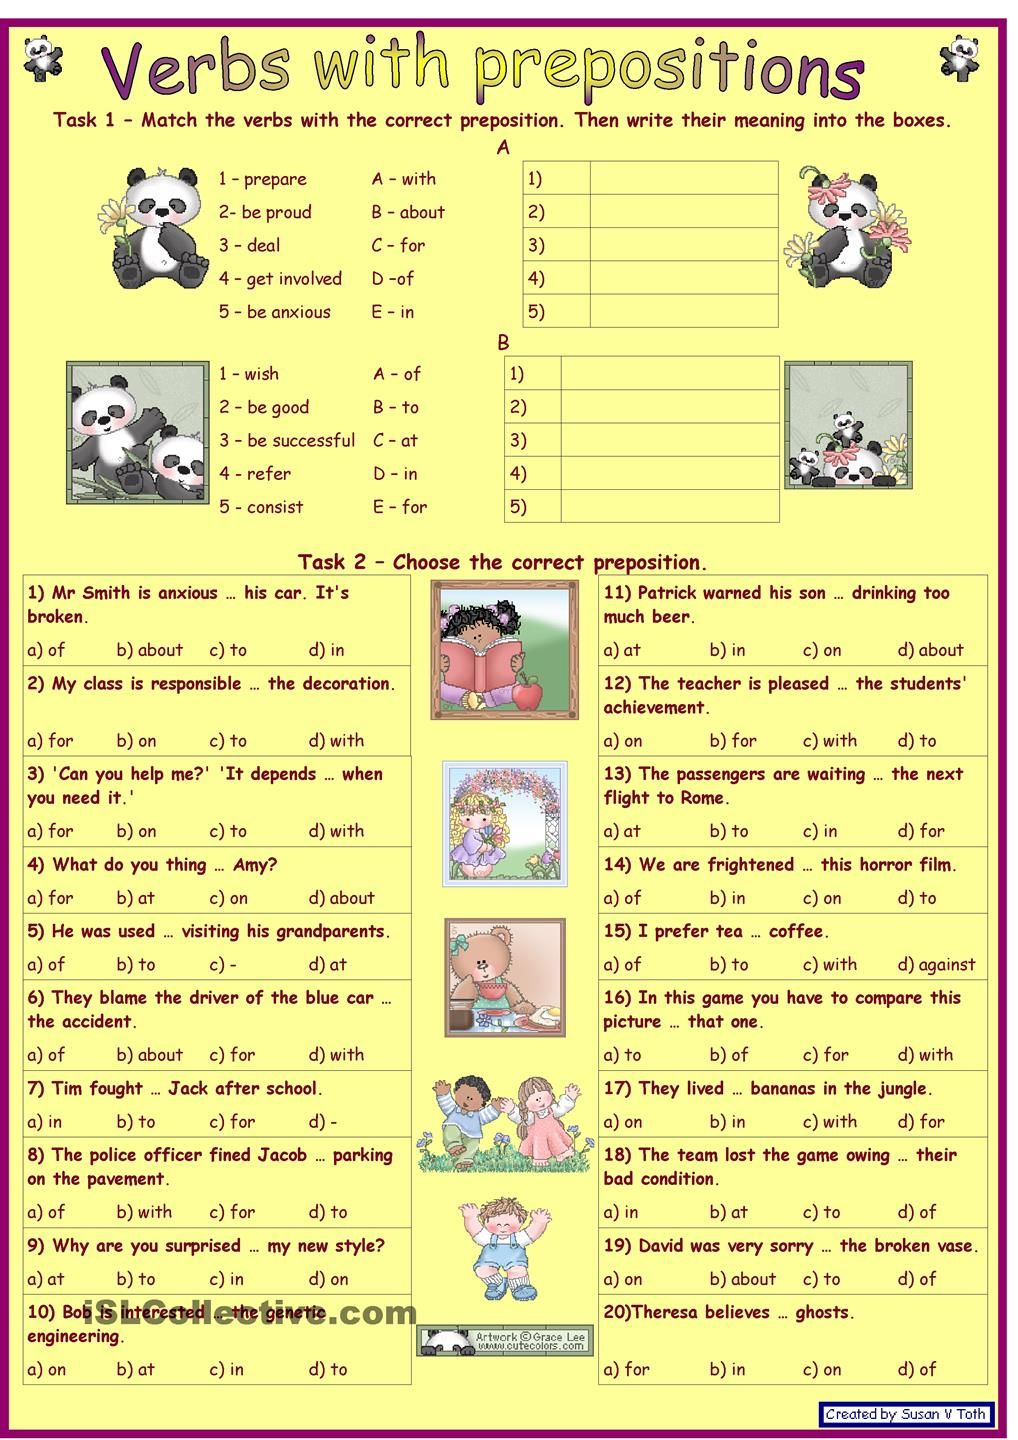 worksheet Advanced Preposition Worksheets verbs with prepositions 1 for intermediate and advanced learners key fully editable worksheet free esl prin